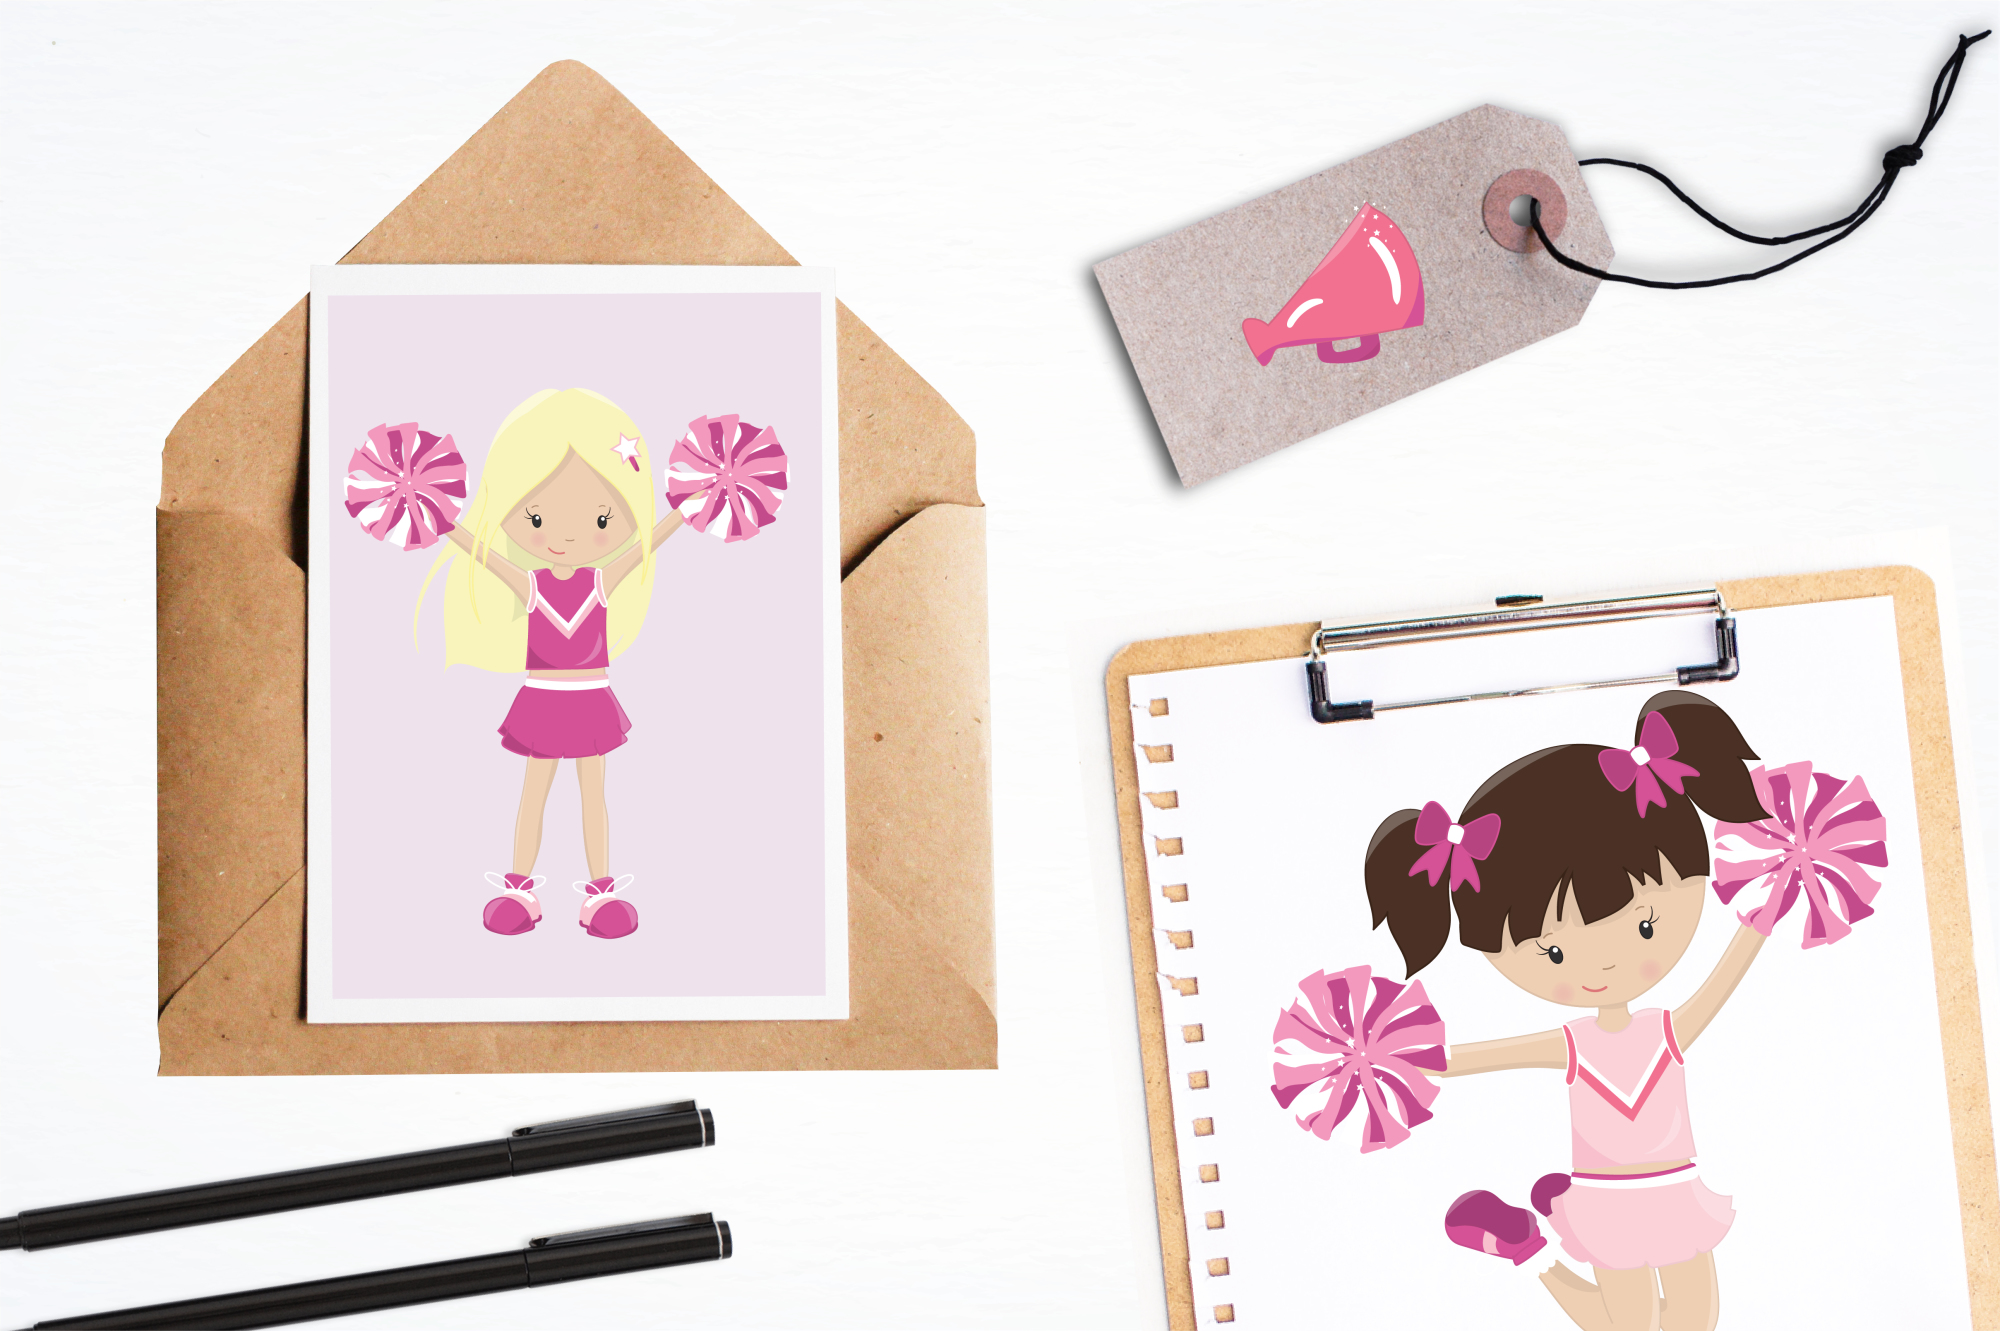 Cheerleaders graphics and illustrations example image 4